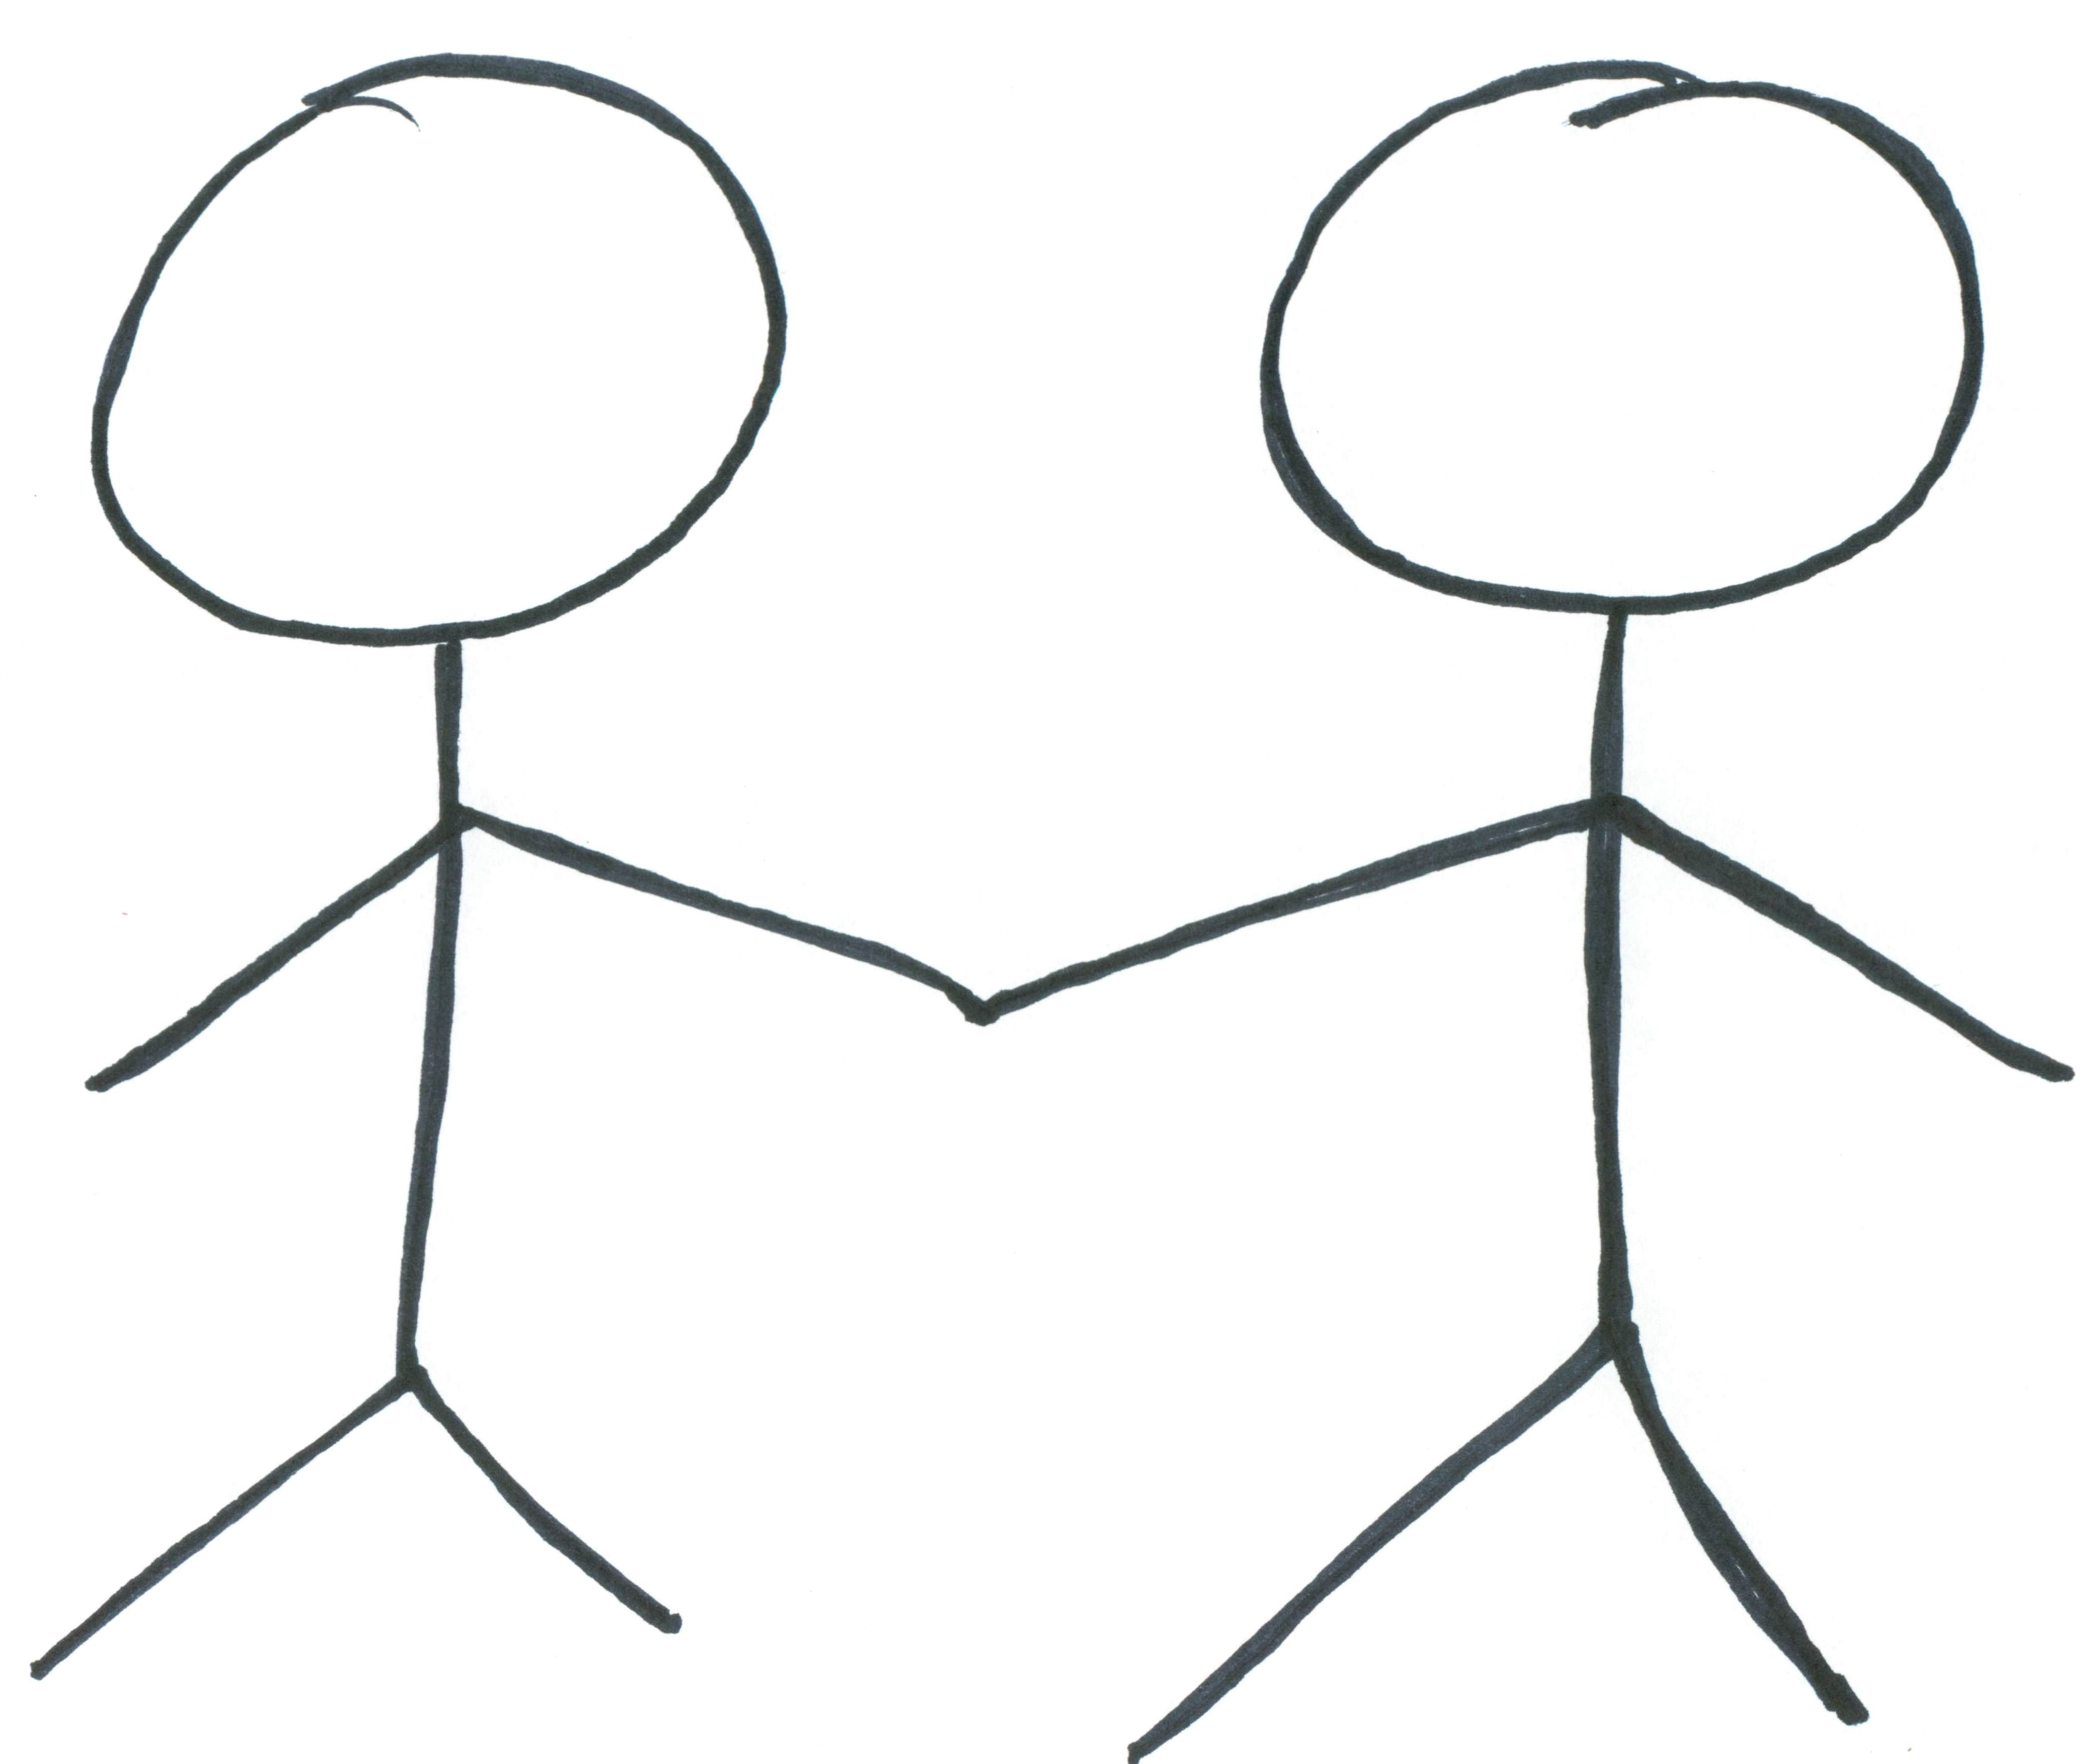 Two Stick Figures Holding Hands